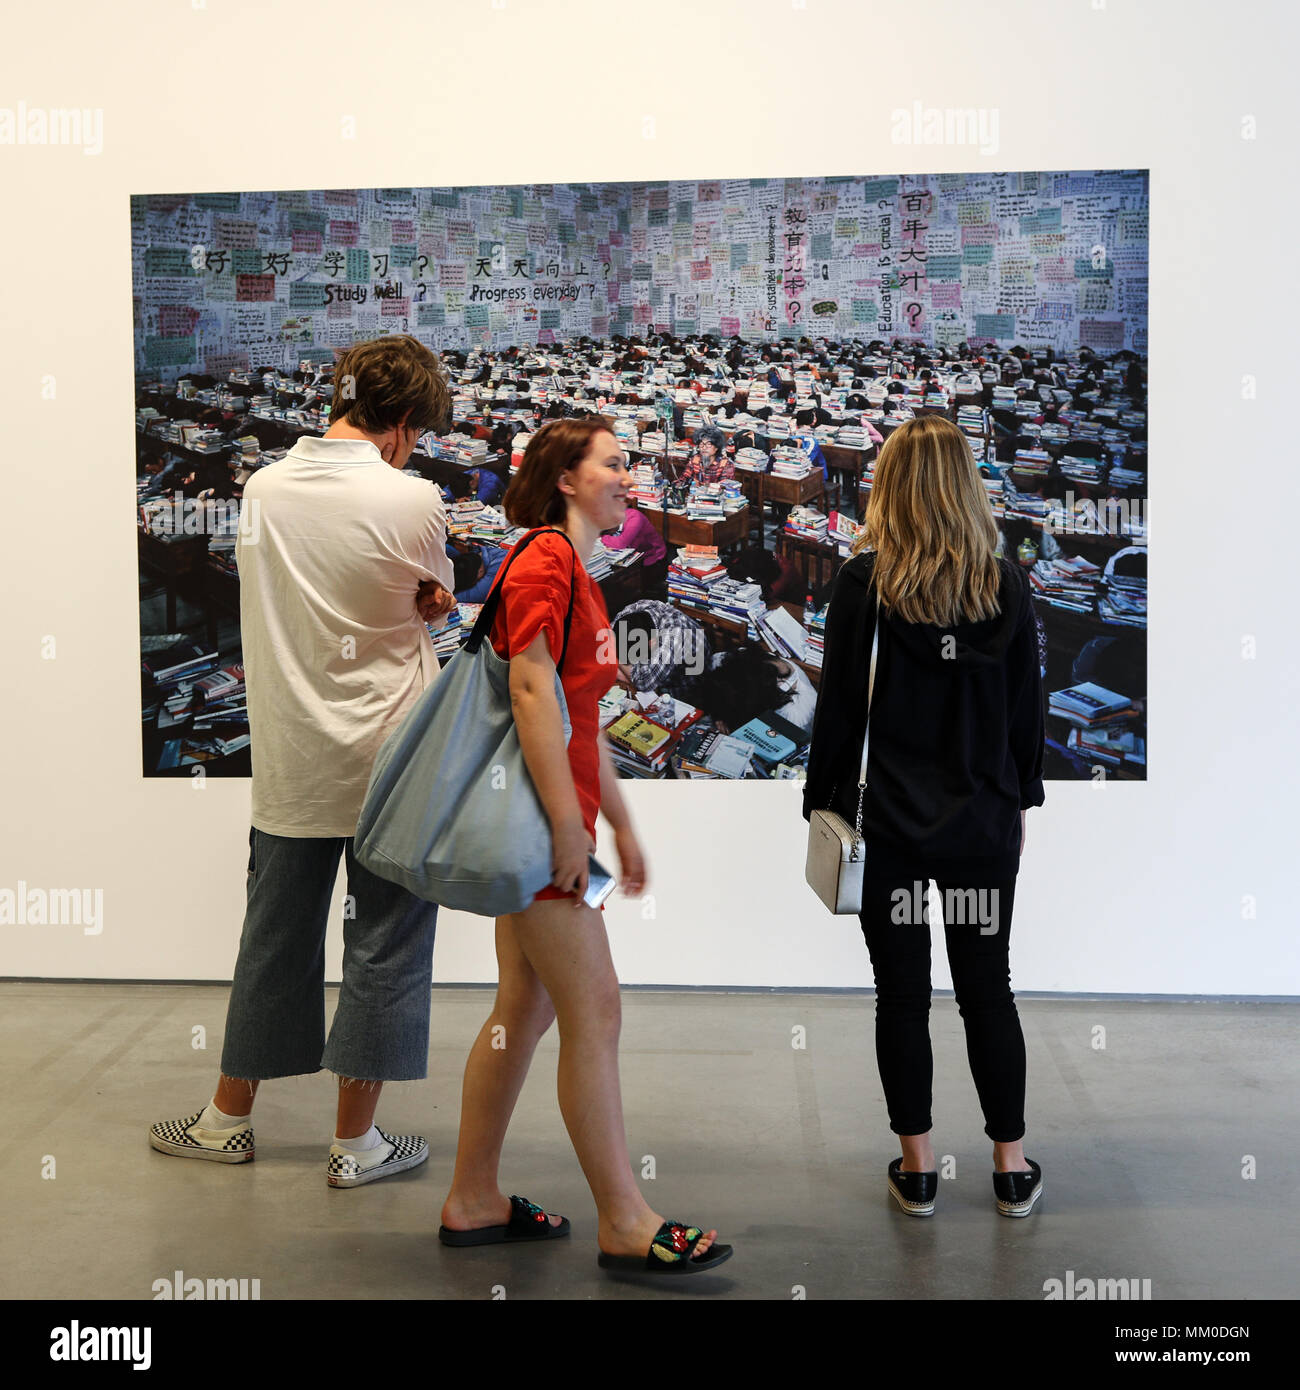 Cracow, Poland - May 8, 2018: Exibition Motherland in Art at Mocak in Krakow. Wang Quinsong - Follow me Credit: Wieslaw Jarek/Alamy Live News - Stock Image